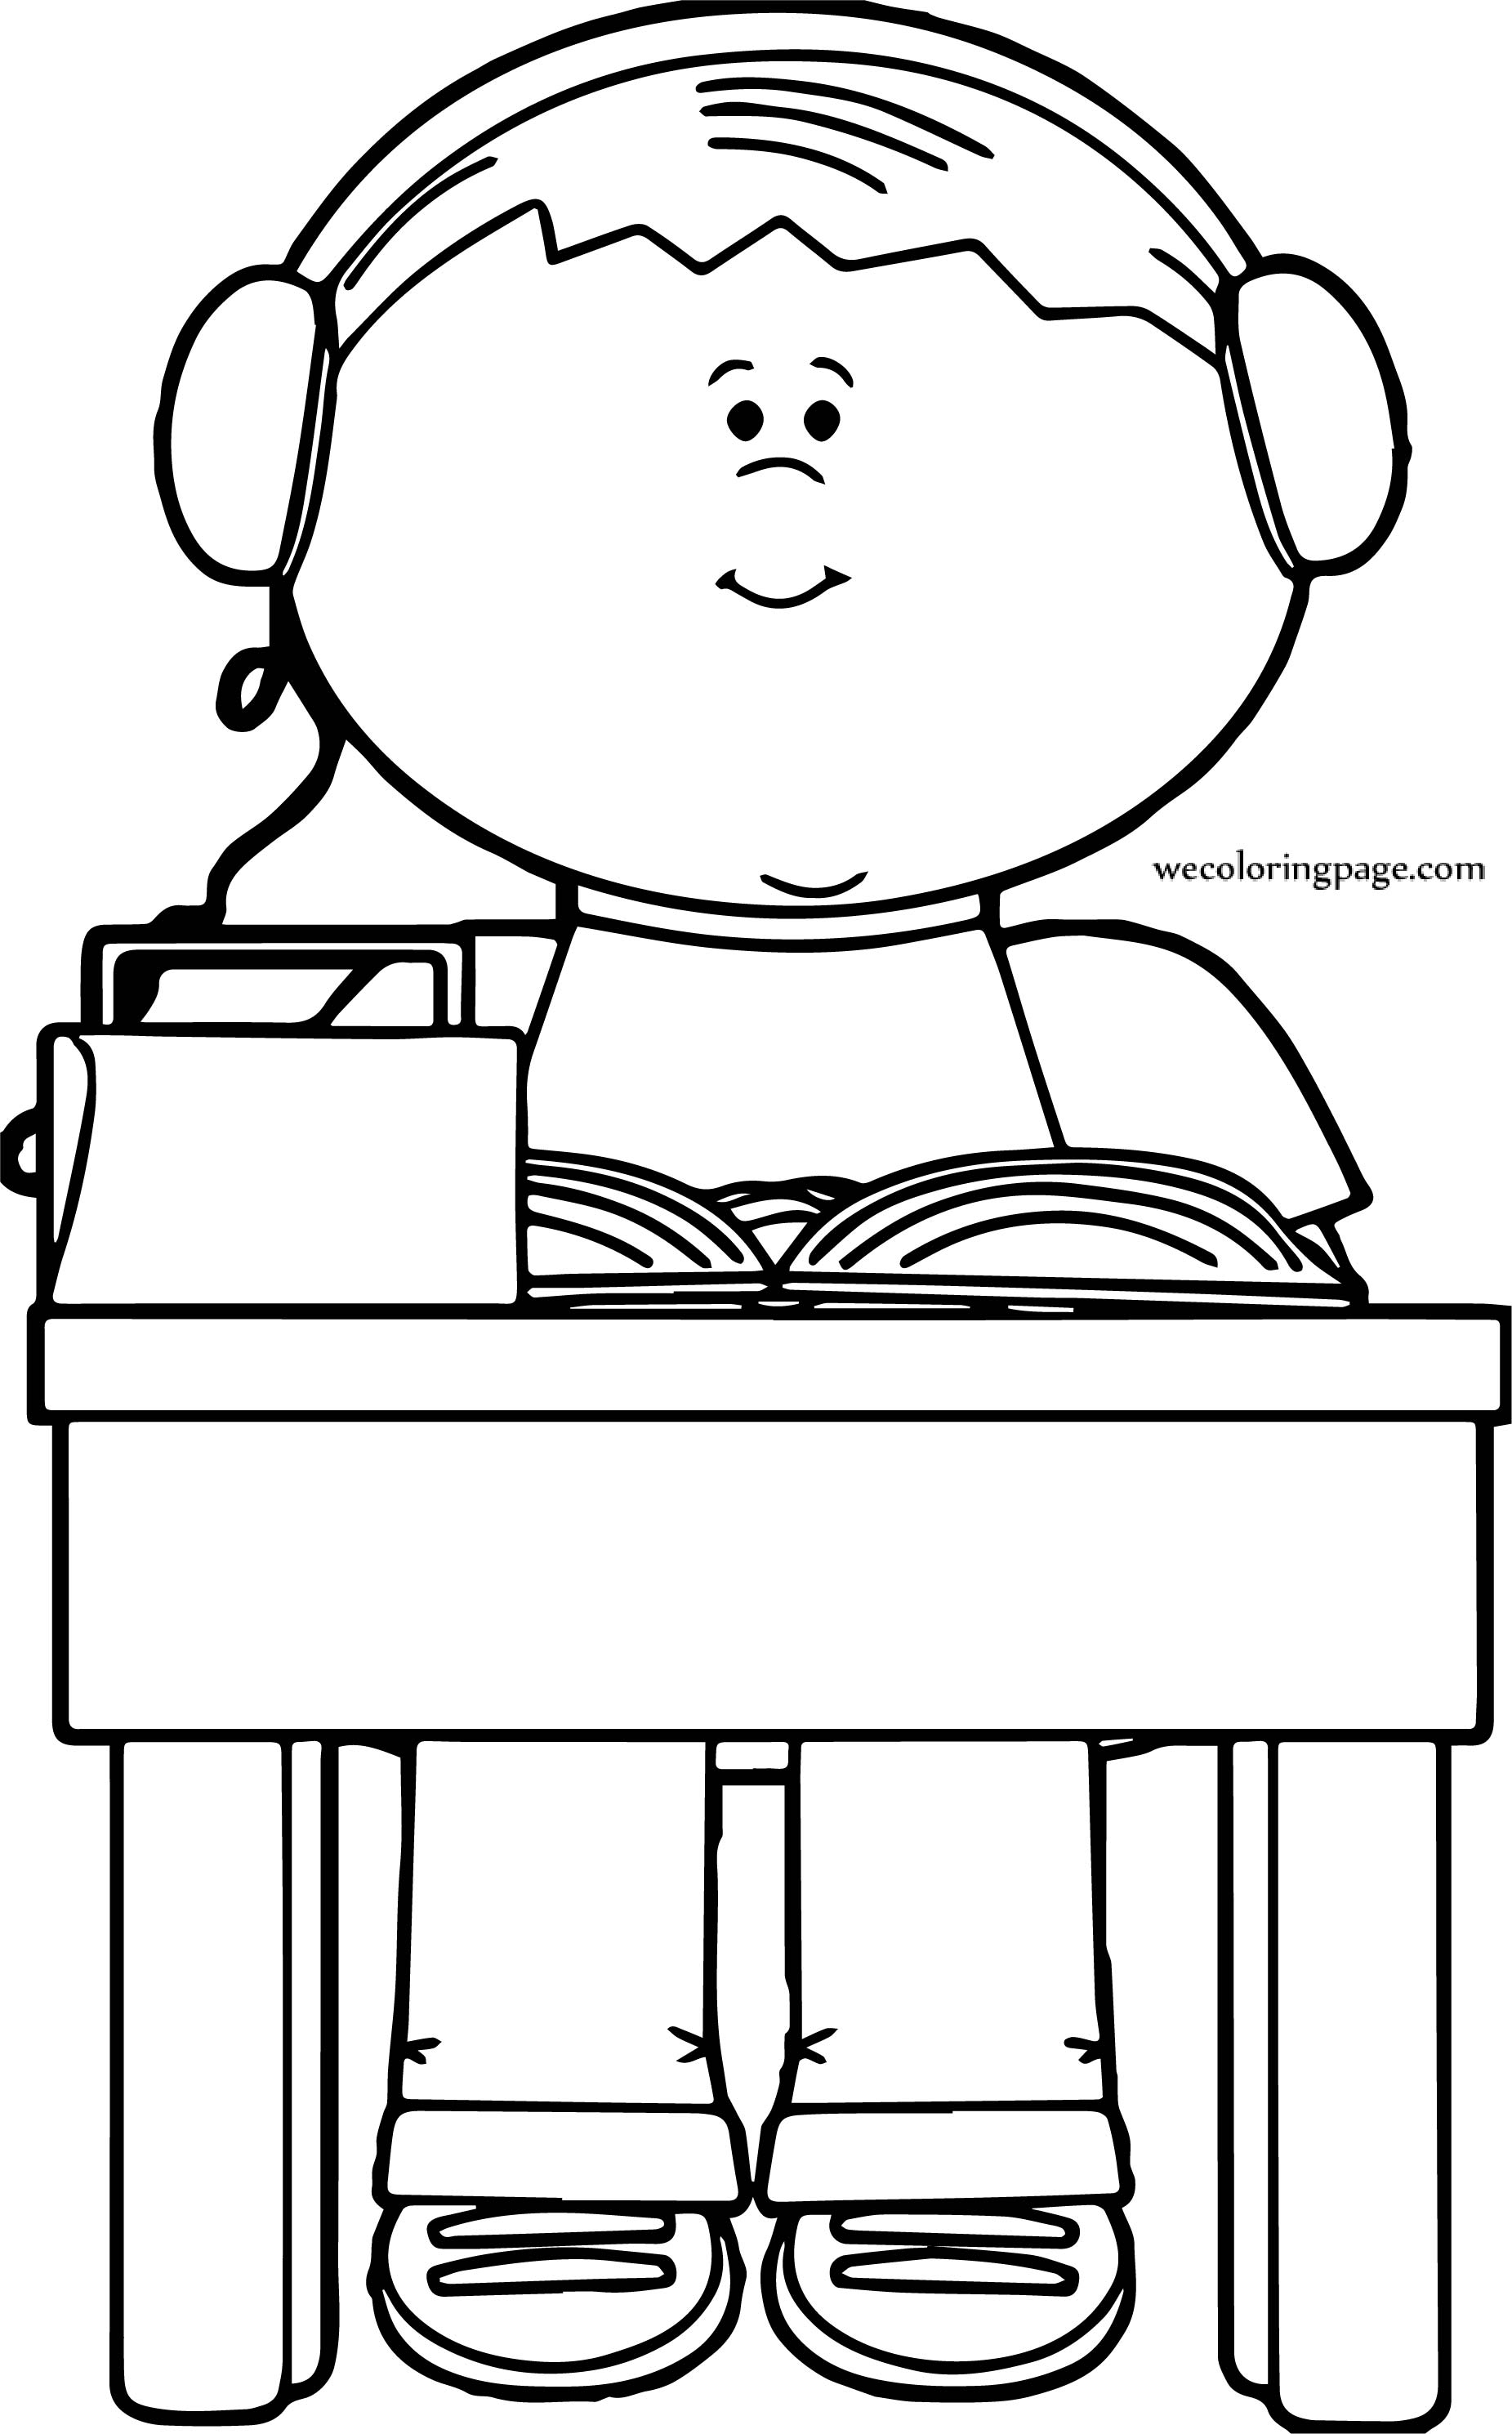 There Boy Coloring Page